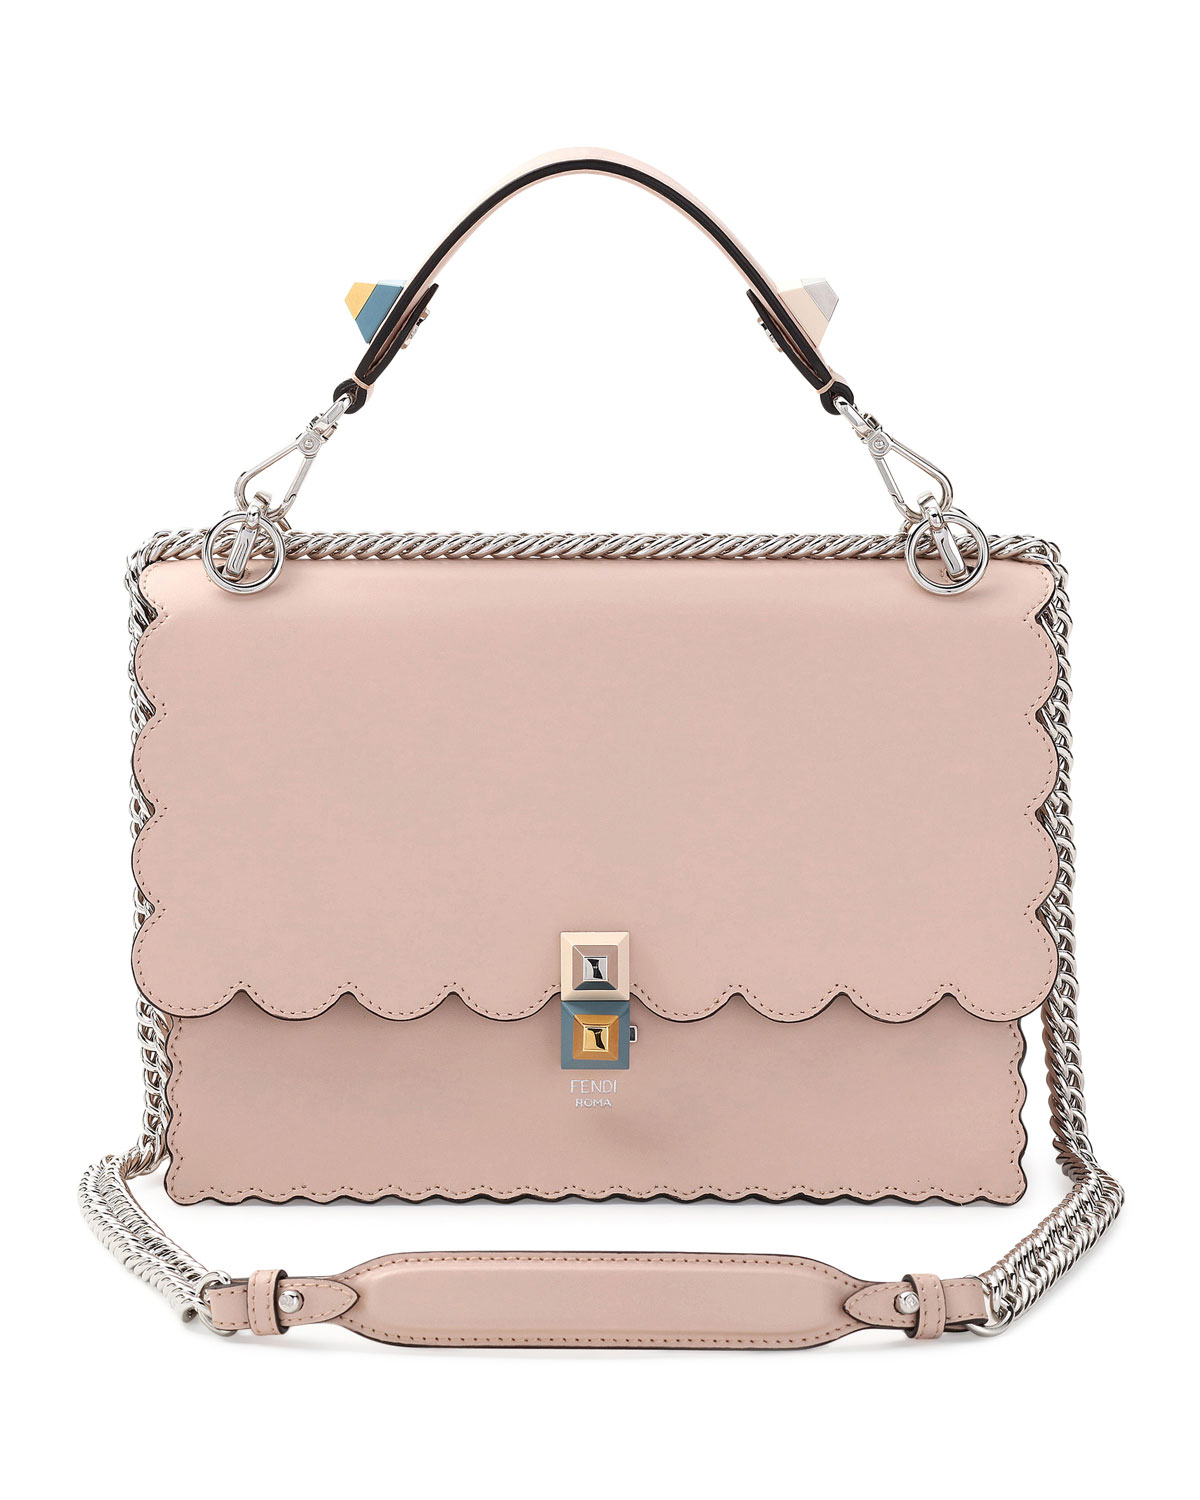 d21157a0363 Fendi Kan I Scalloped Leather Shoulder Bag, Pink | Neiman Marcus